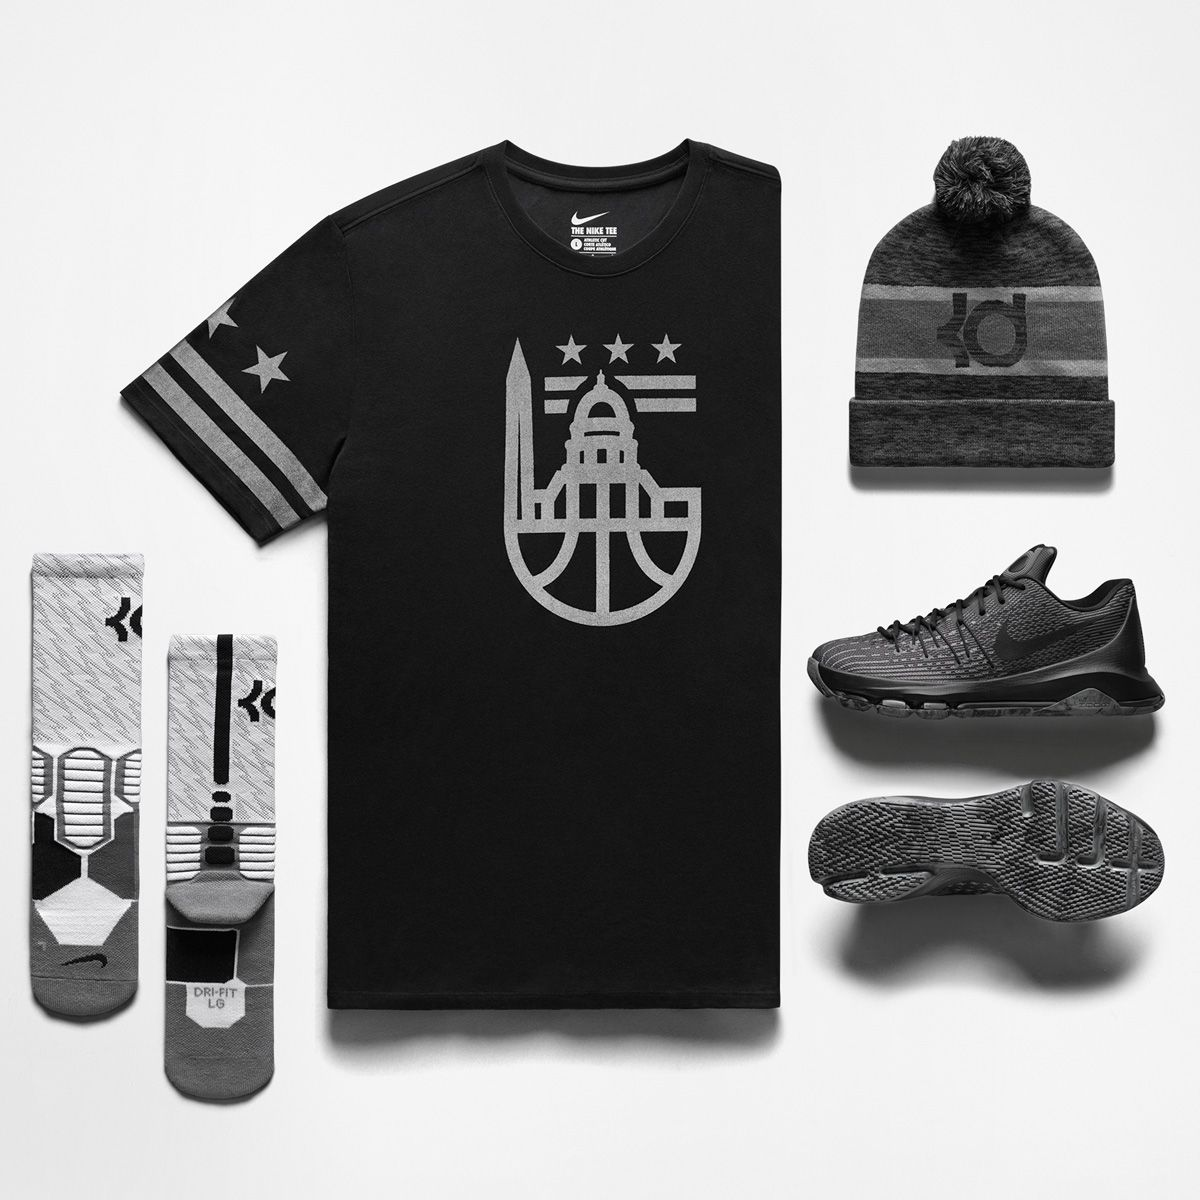 0822734948c1 Grab the Nike KD 8  Blackout  because the brightest stars shine in the  darkest spots.